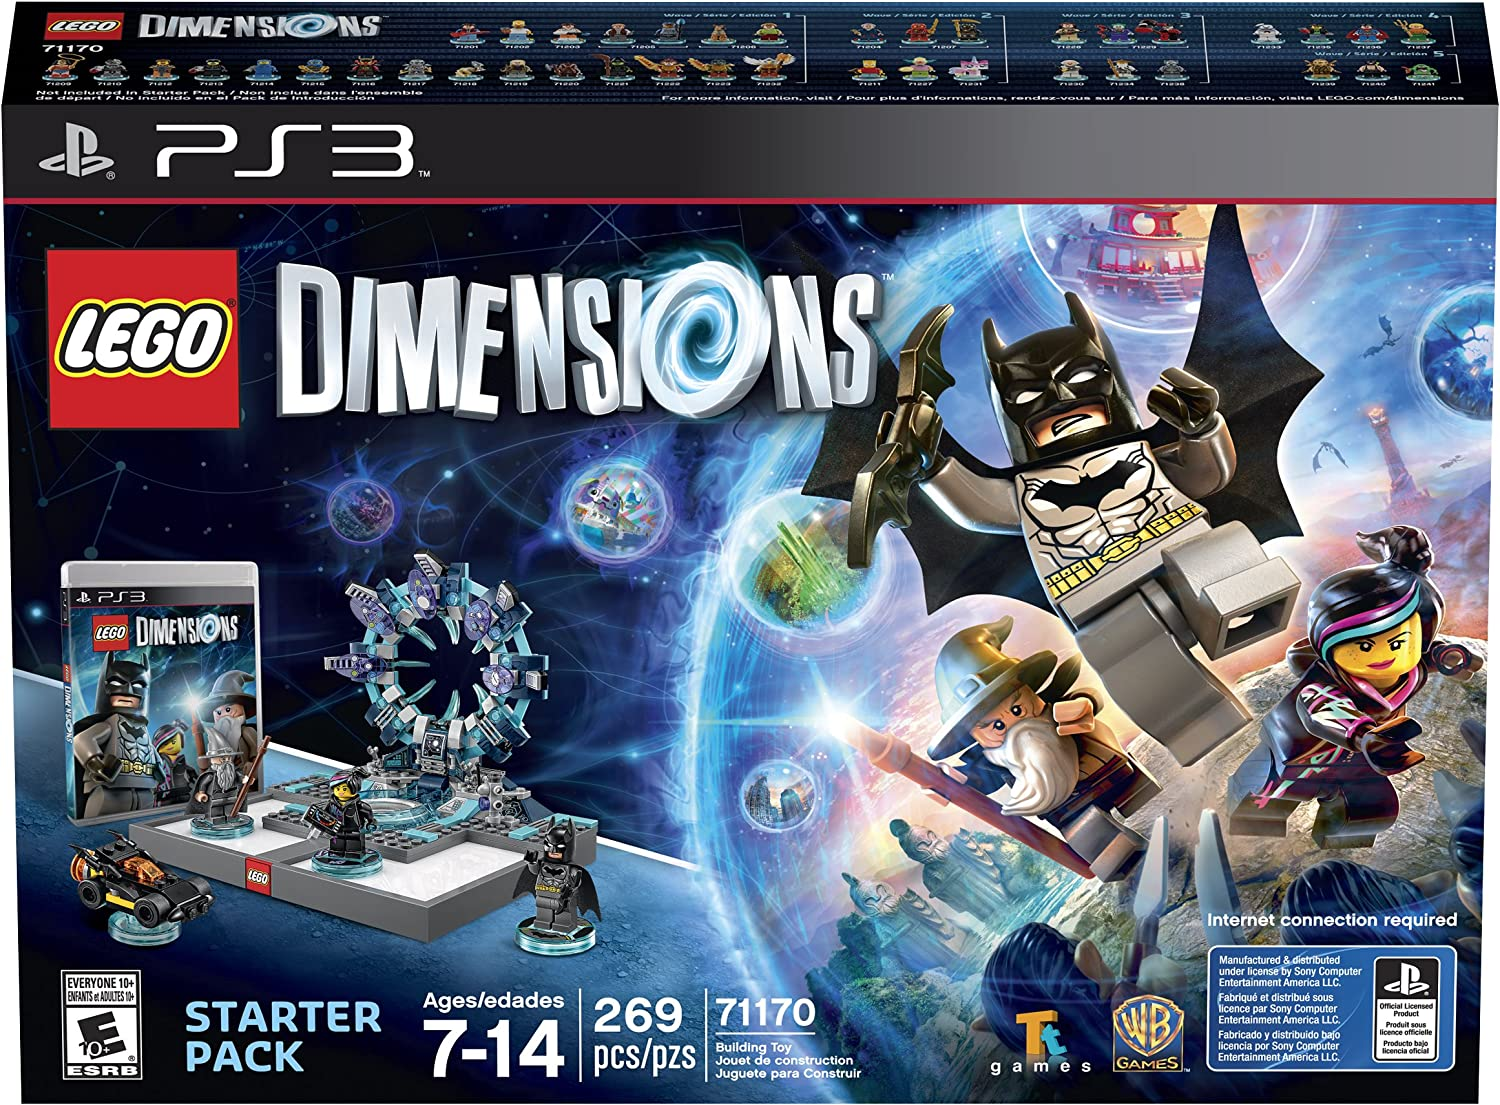 Amazon.com: LEGO Dimensions Starter Pack - PlayStation 3 ...